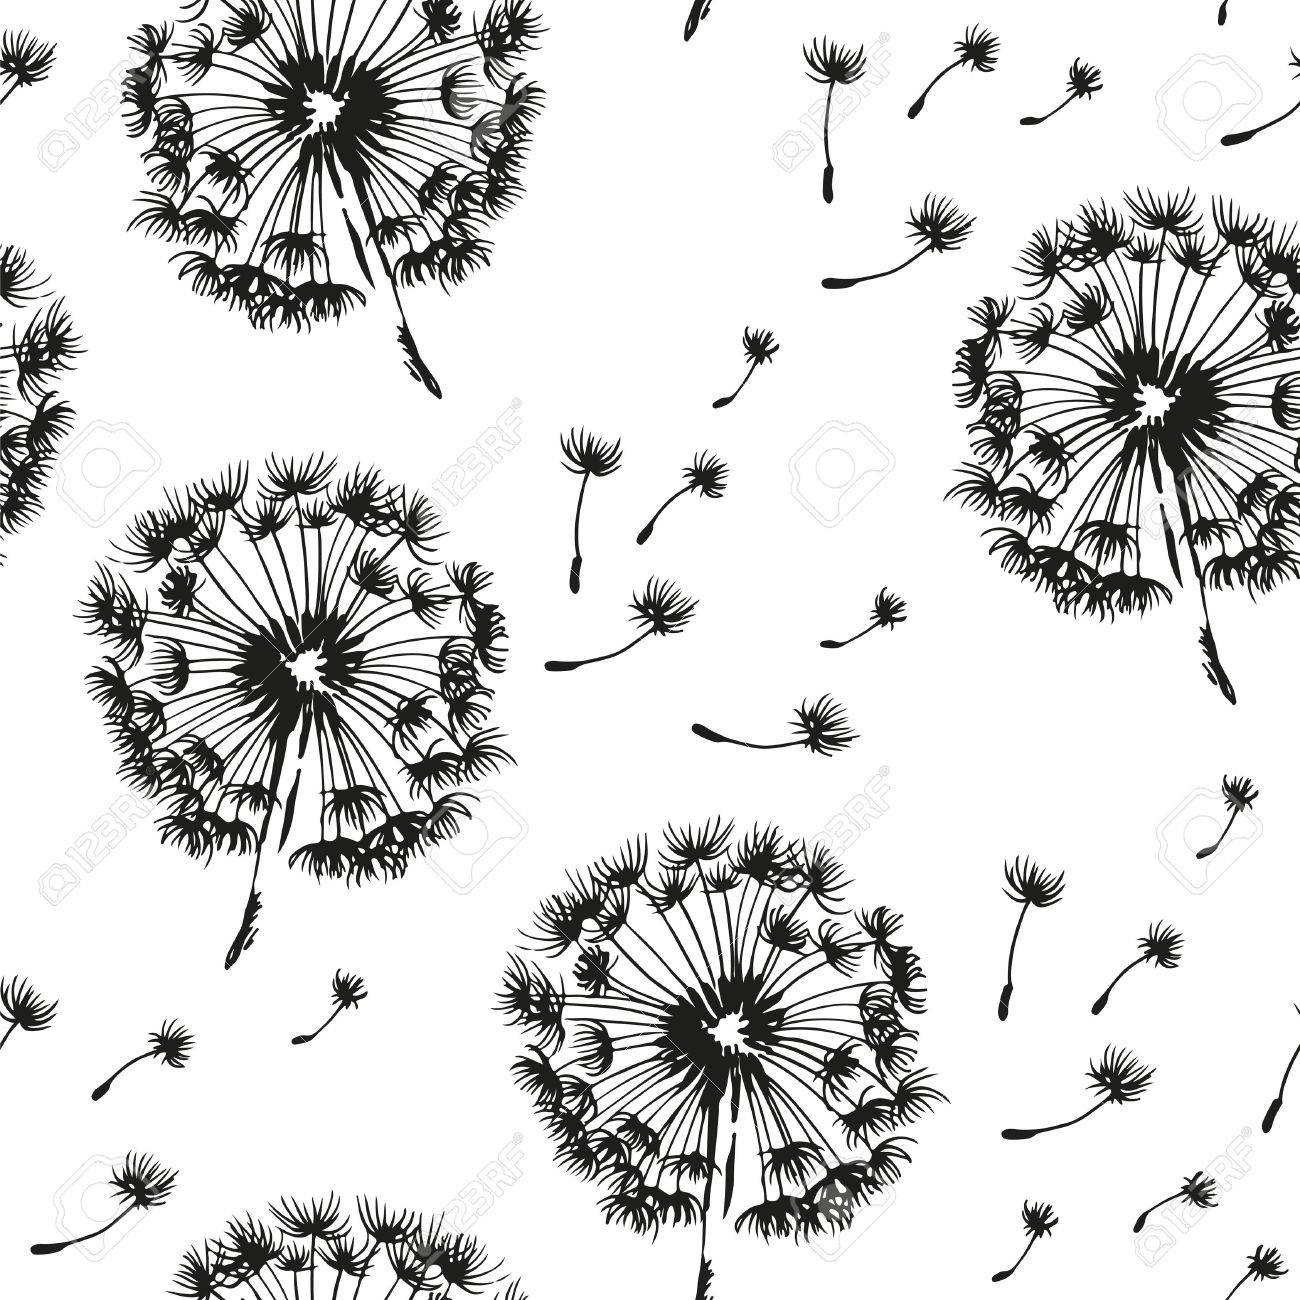 Dandelion And Seeds Blowing In The Wind Seamless Pattern Vector